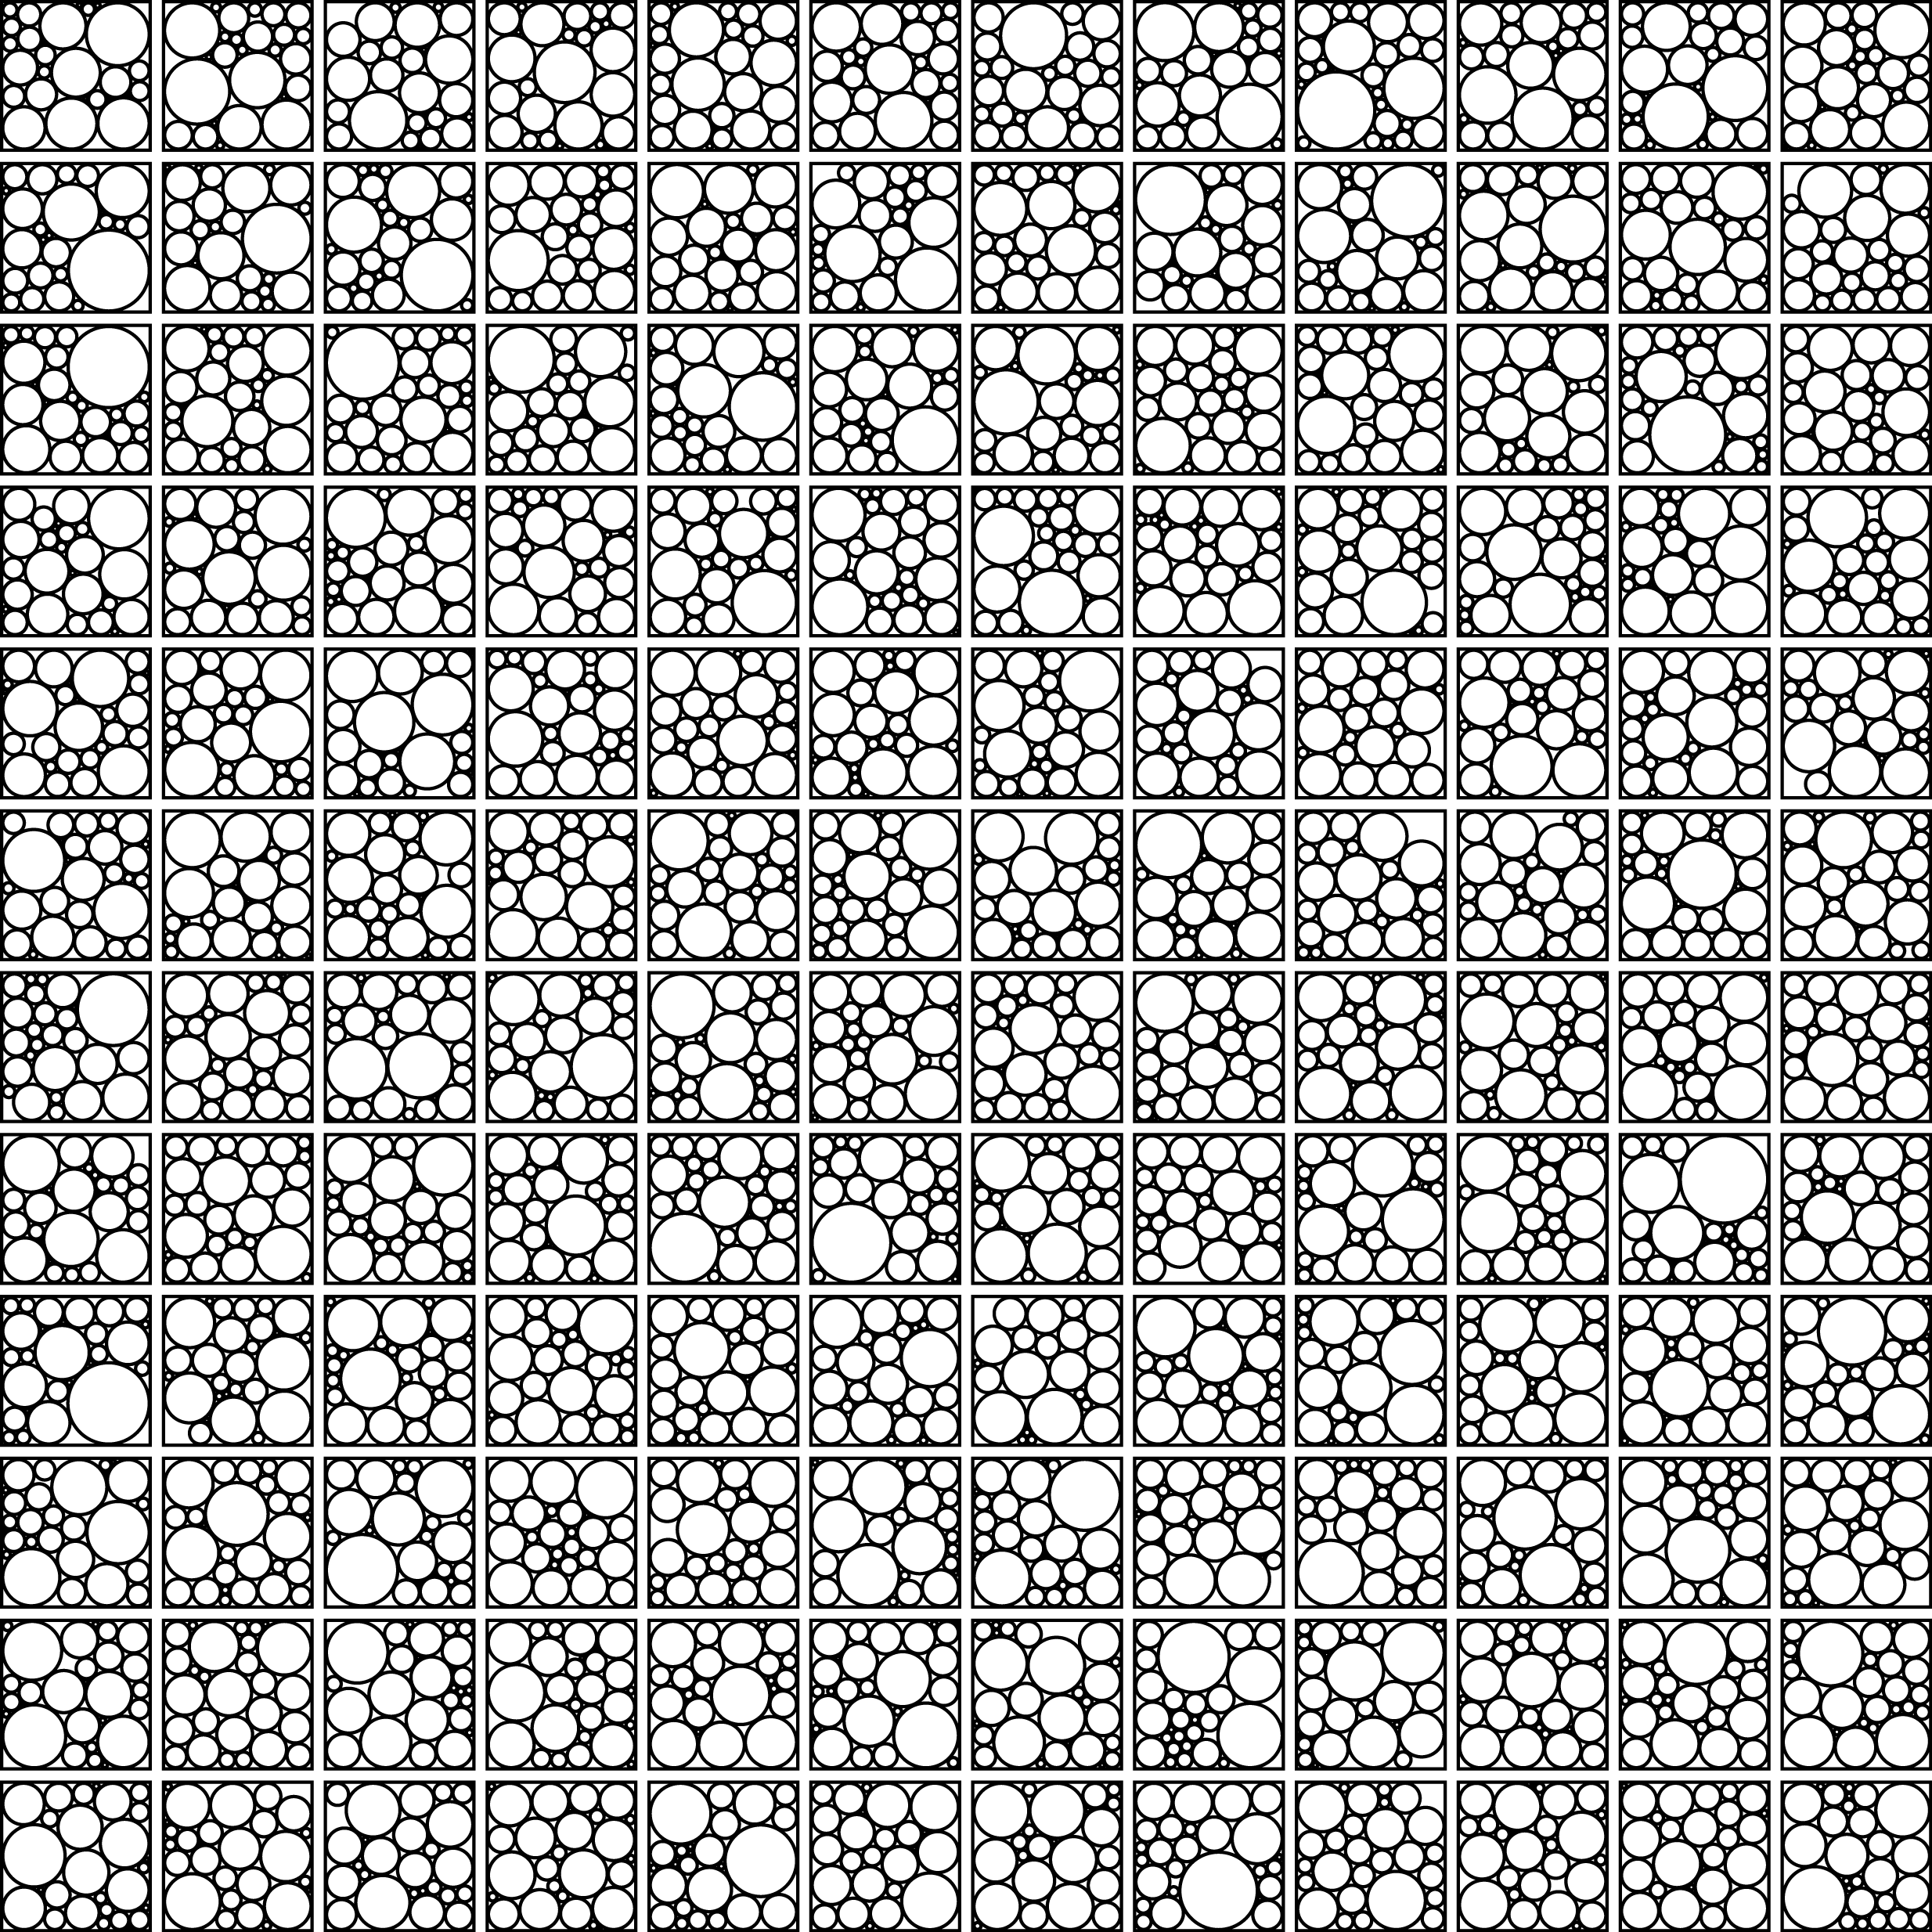 144 sets of 27 circles packed into squares